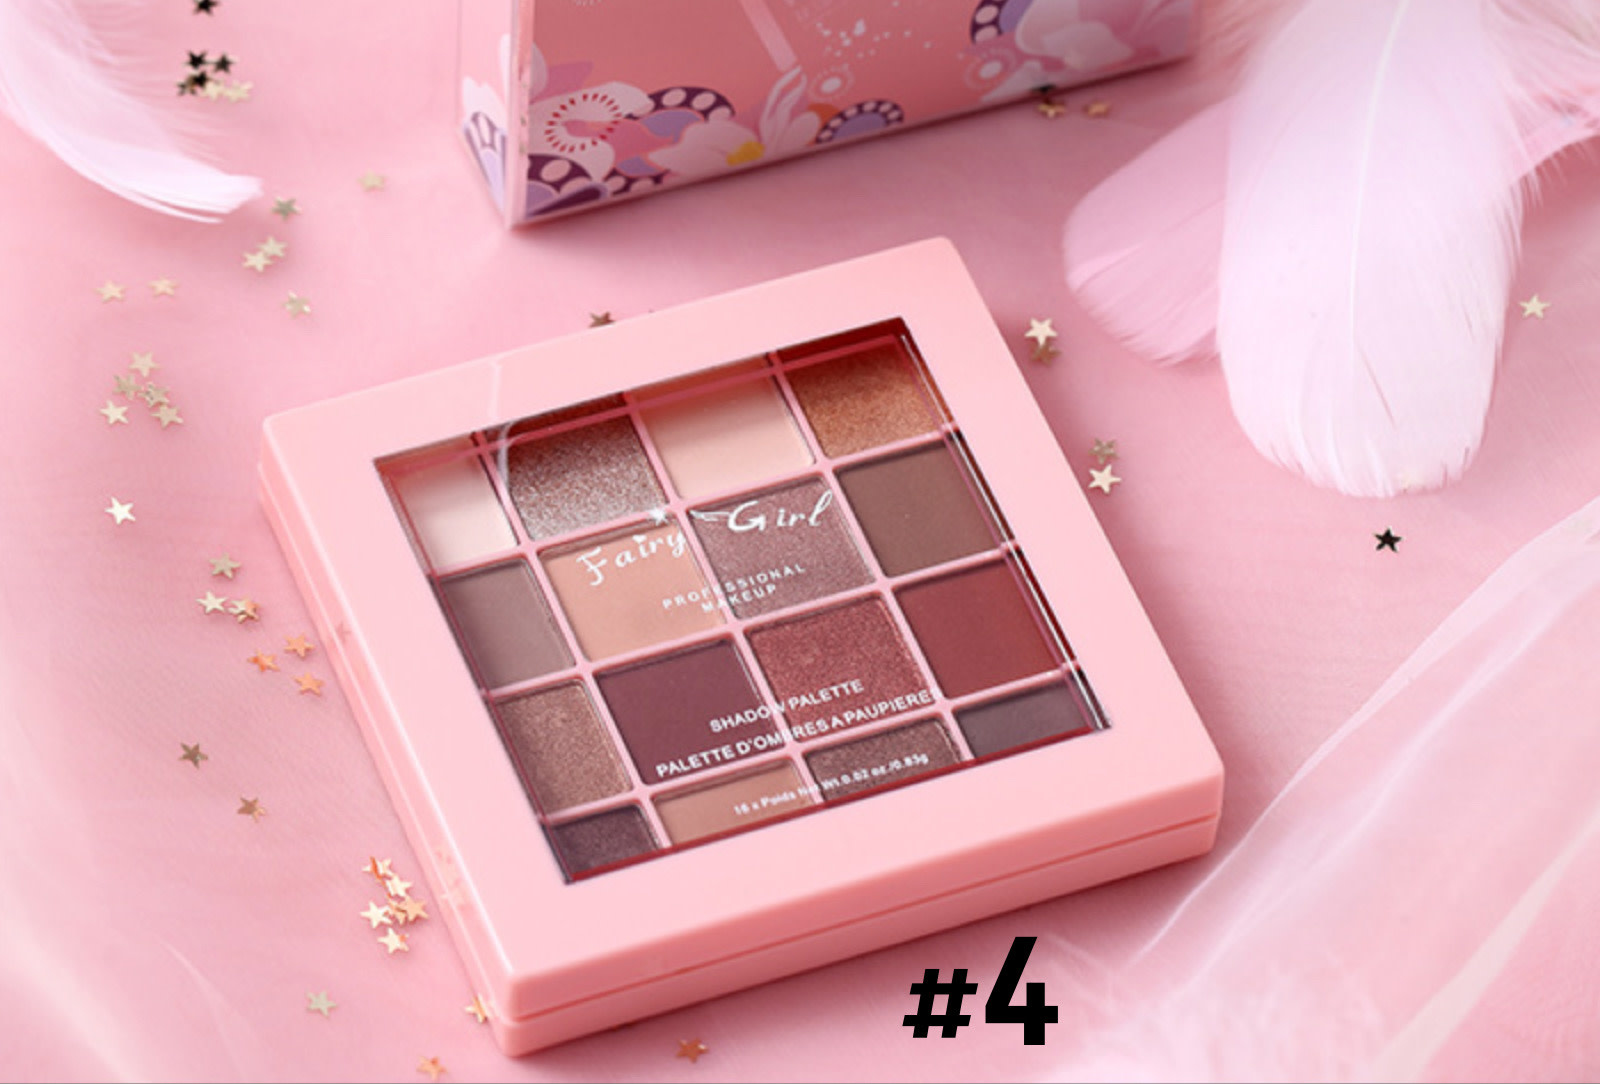 8016 Fairy Girl Eyeshadow Palette